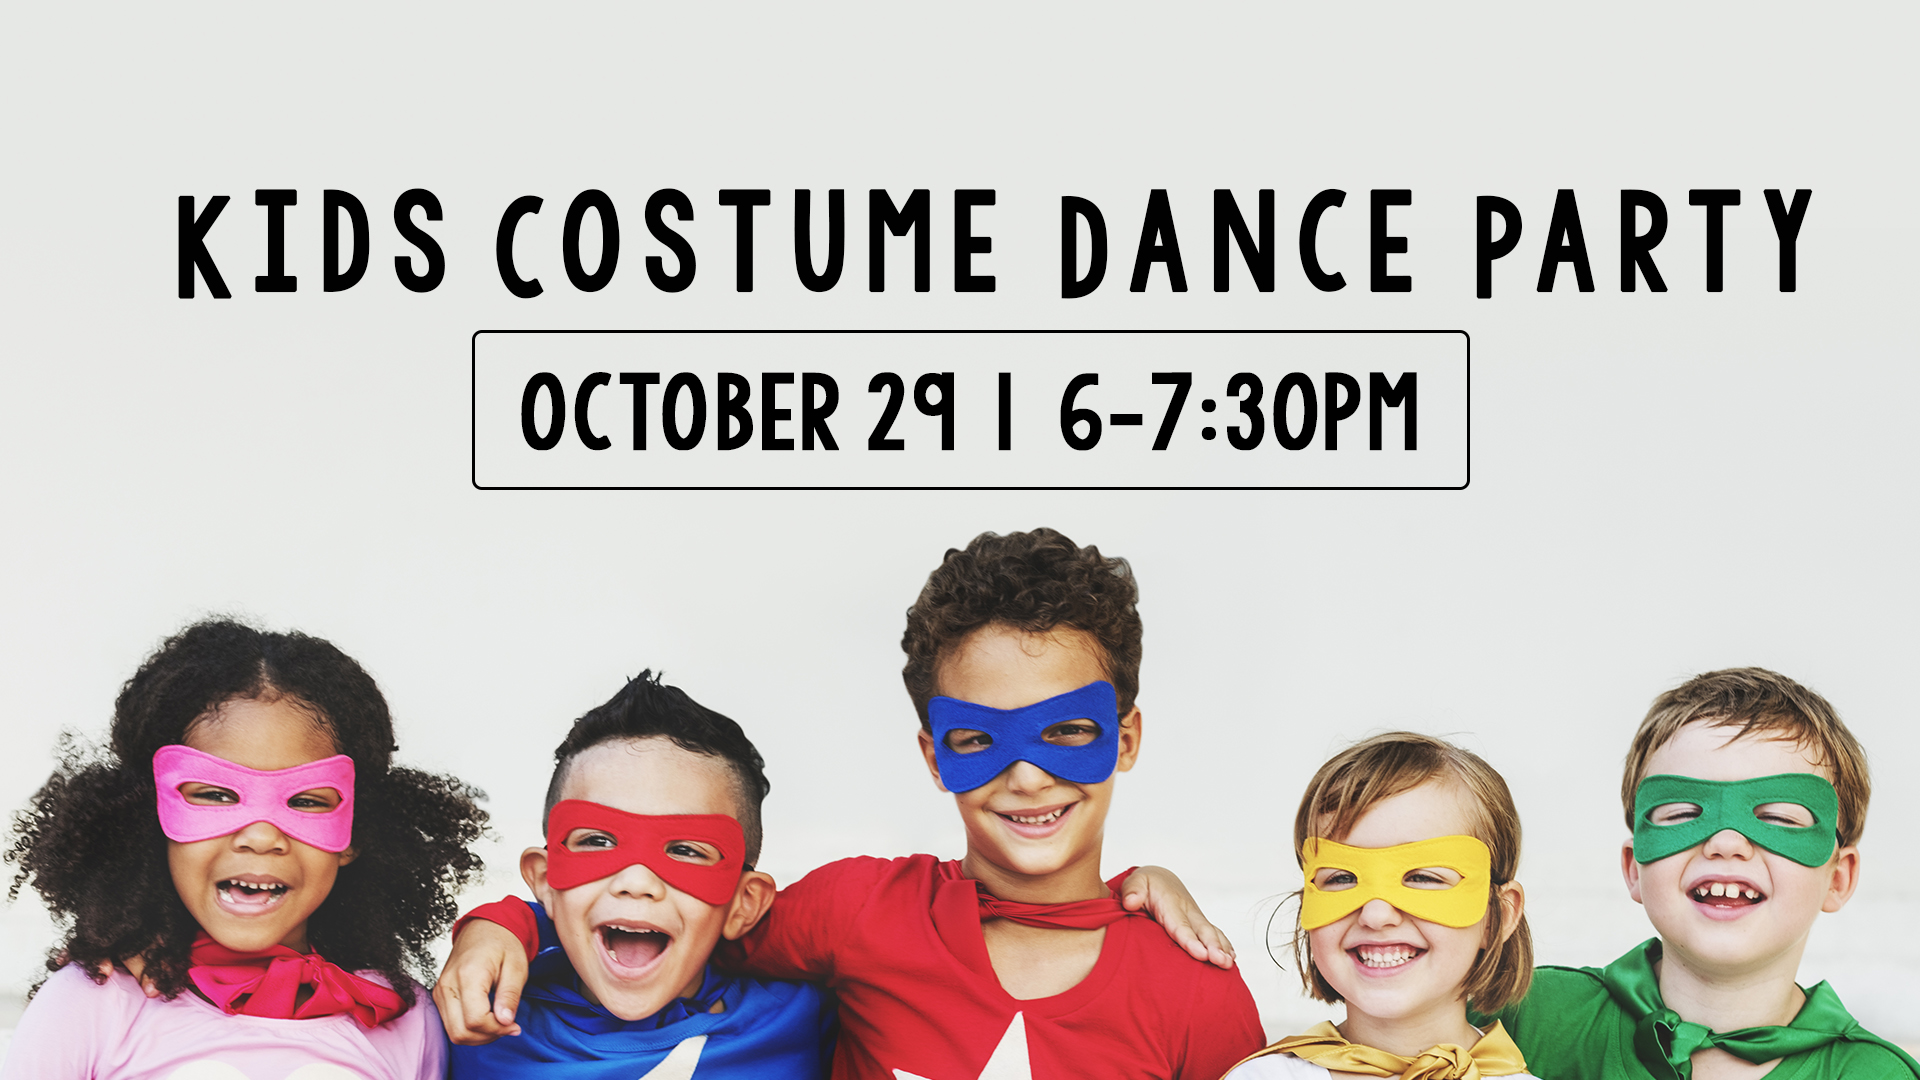 Kids Costume Dance Party